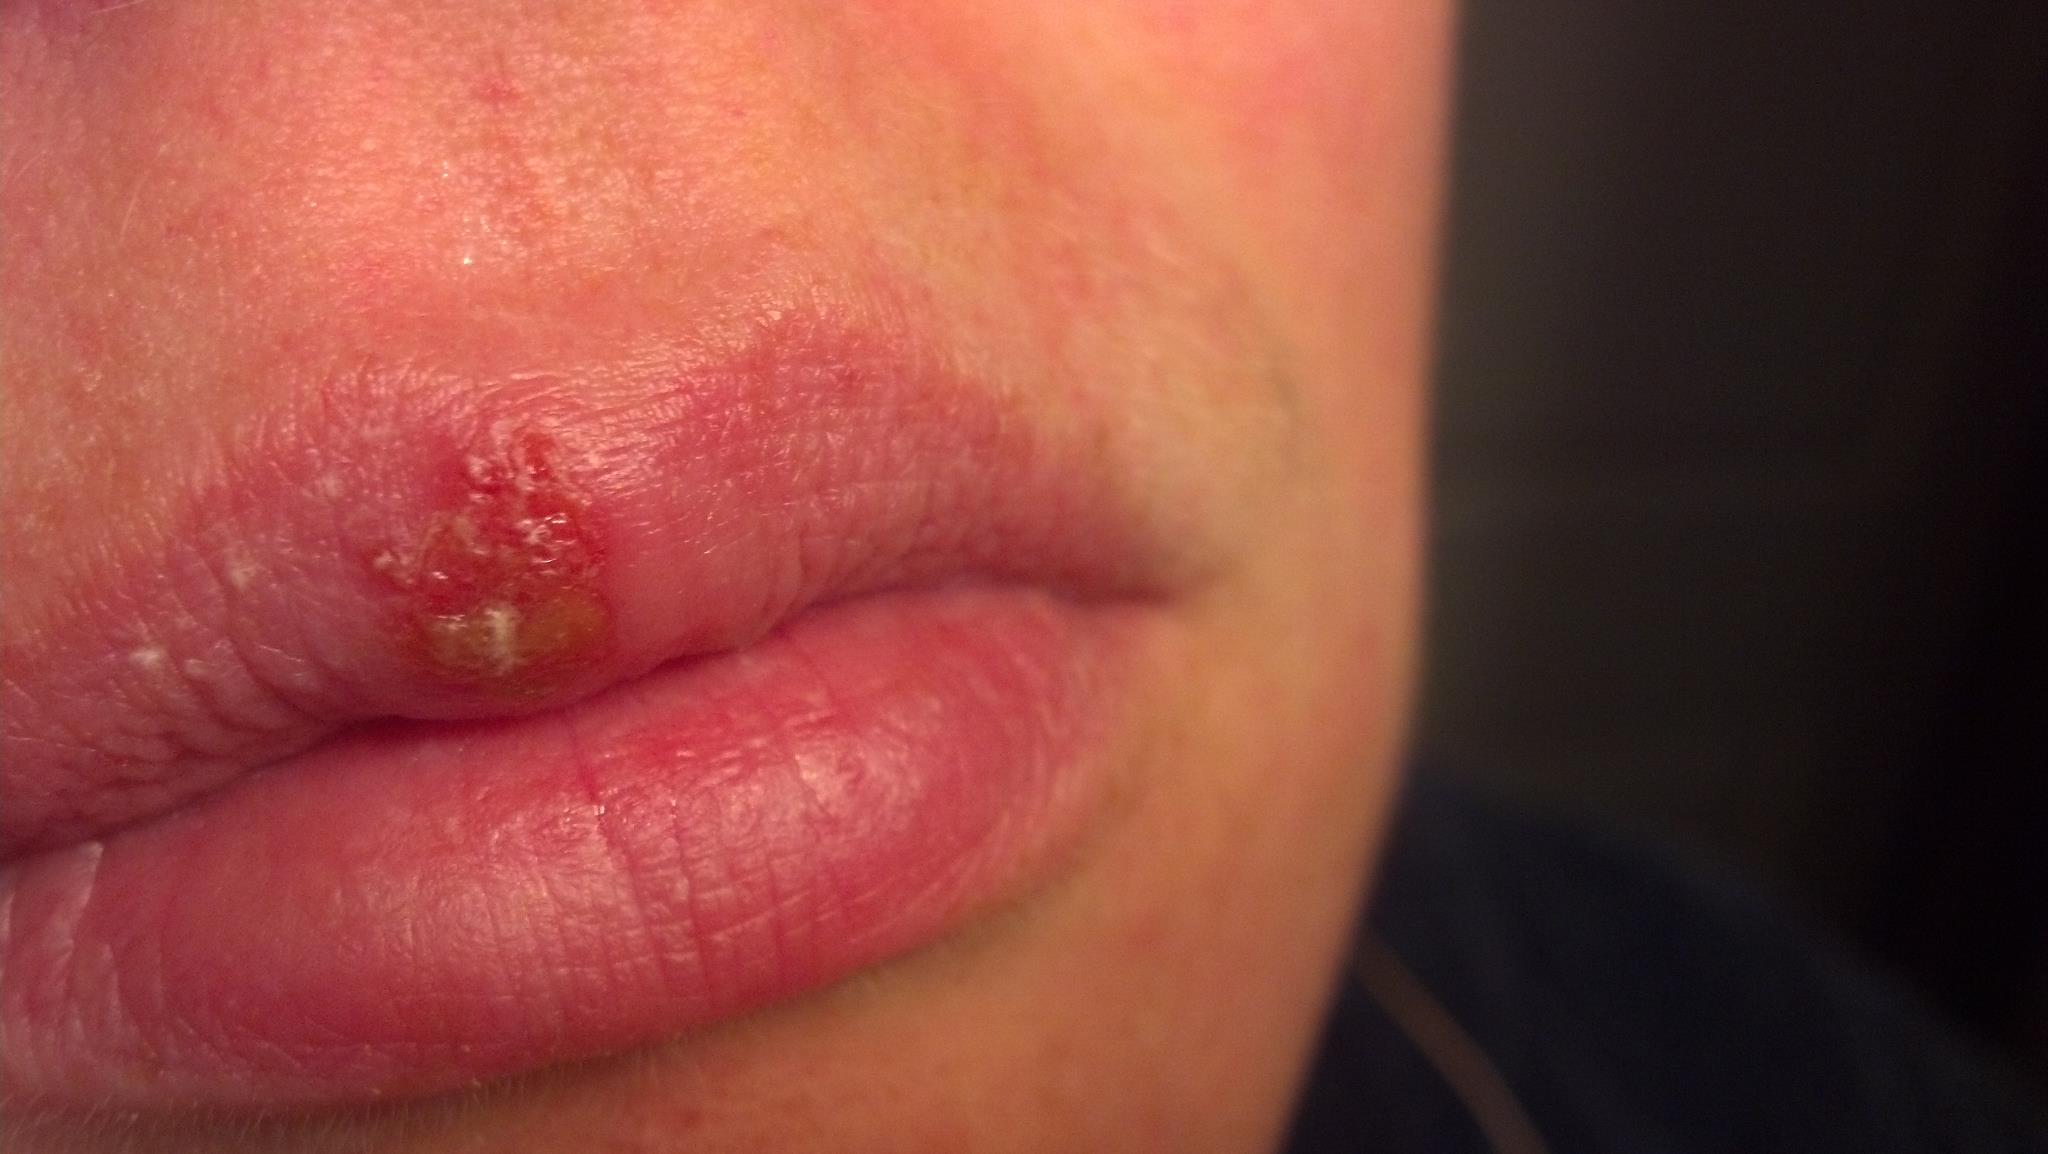 cold sore image #11